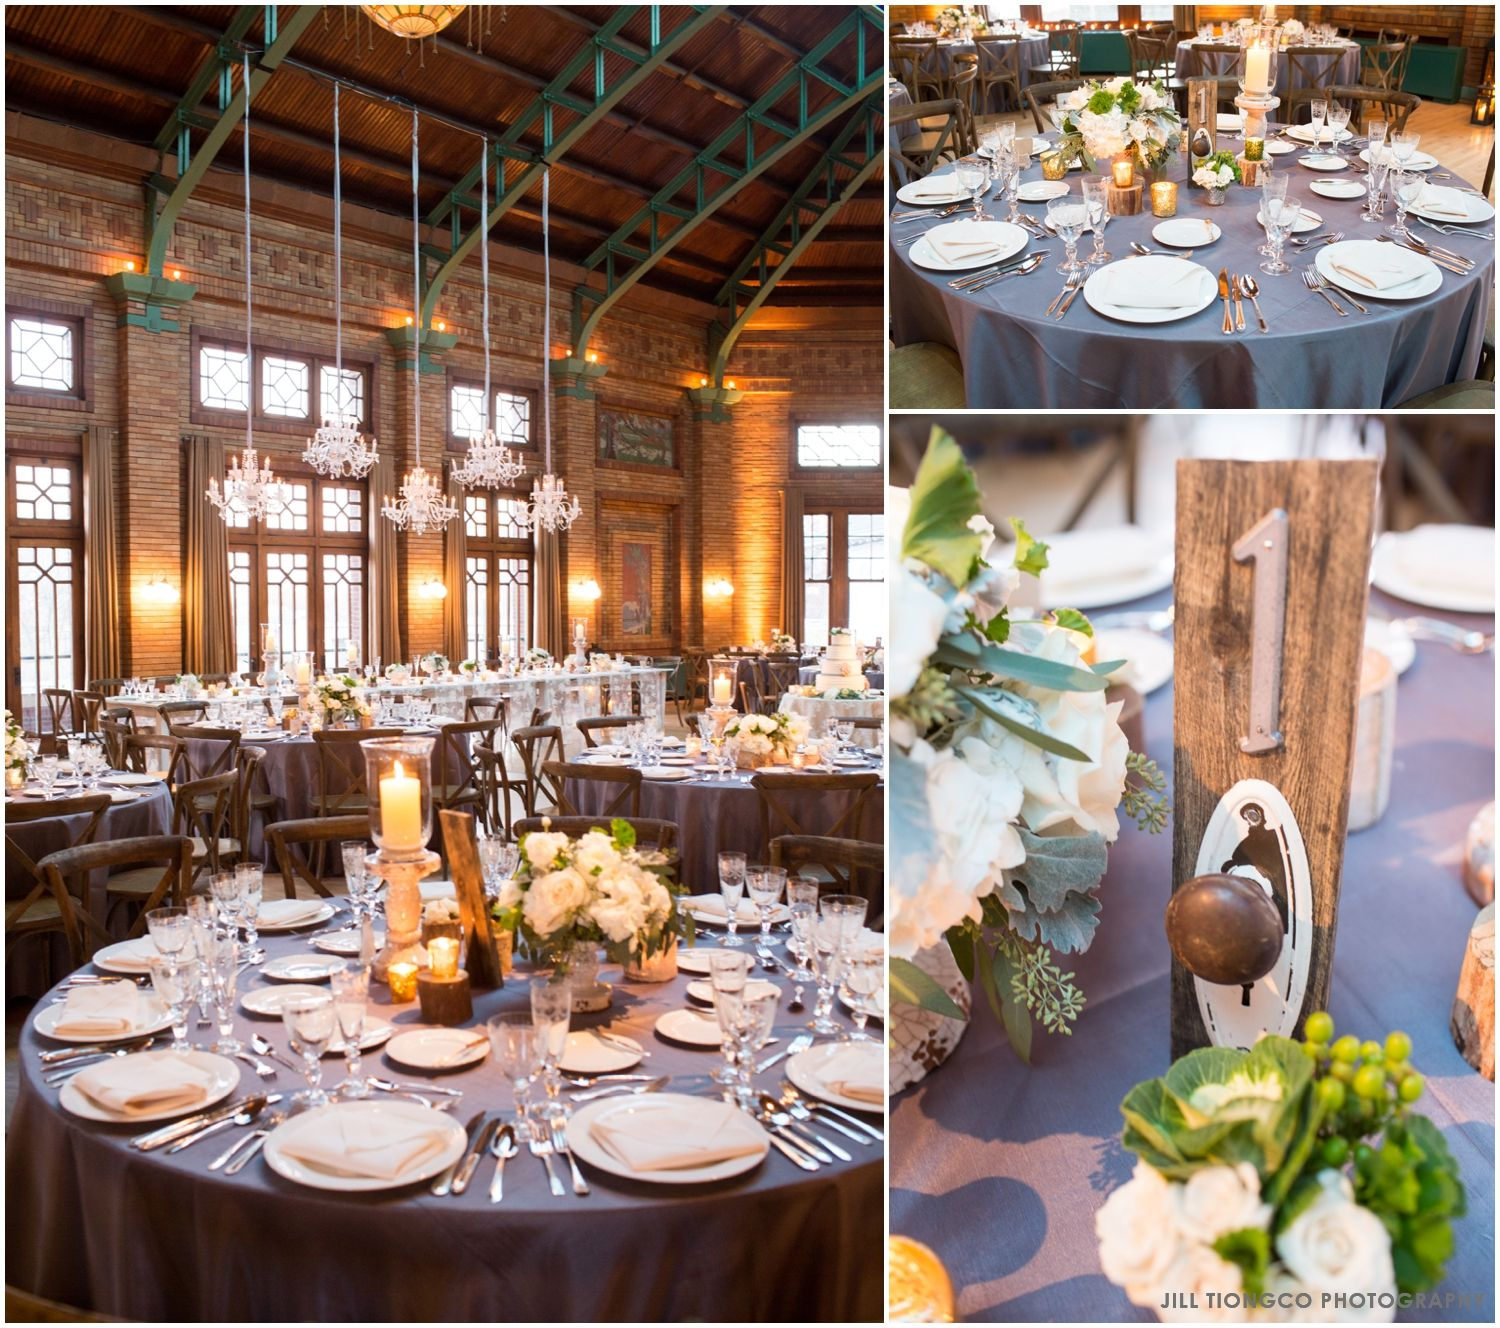 Wedding decoration ideas Lincoln Park Zoo Cafe Brauer